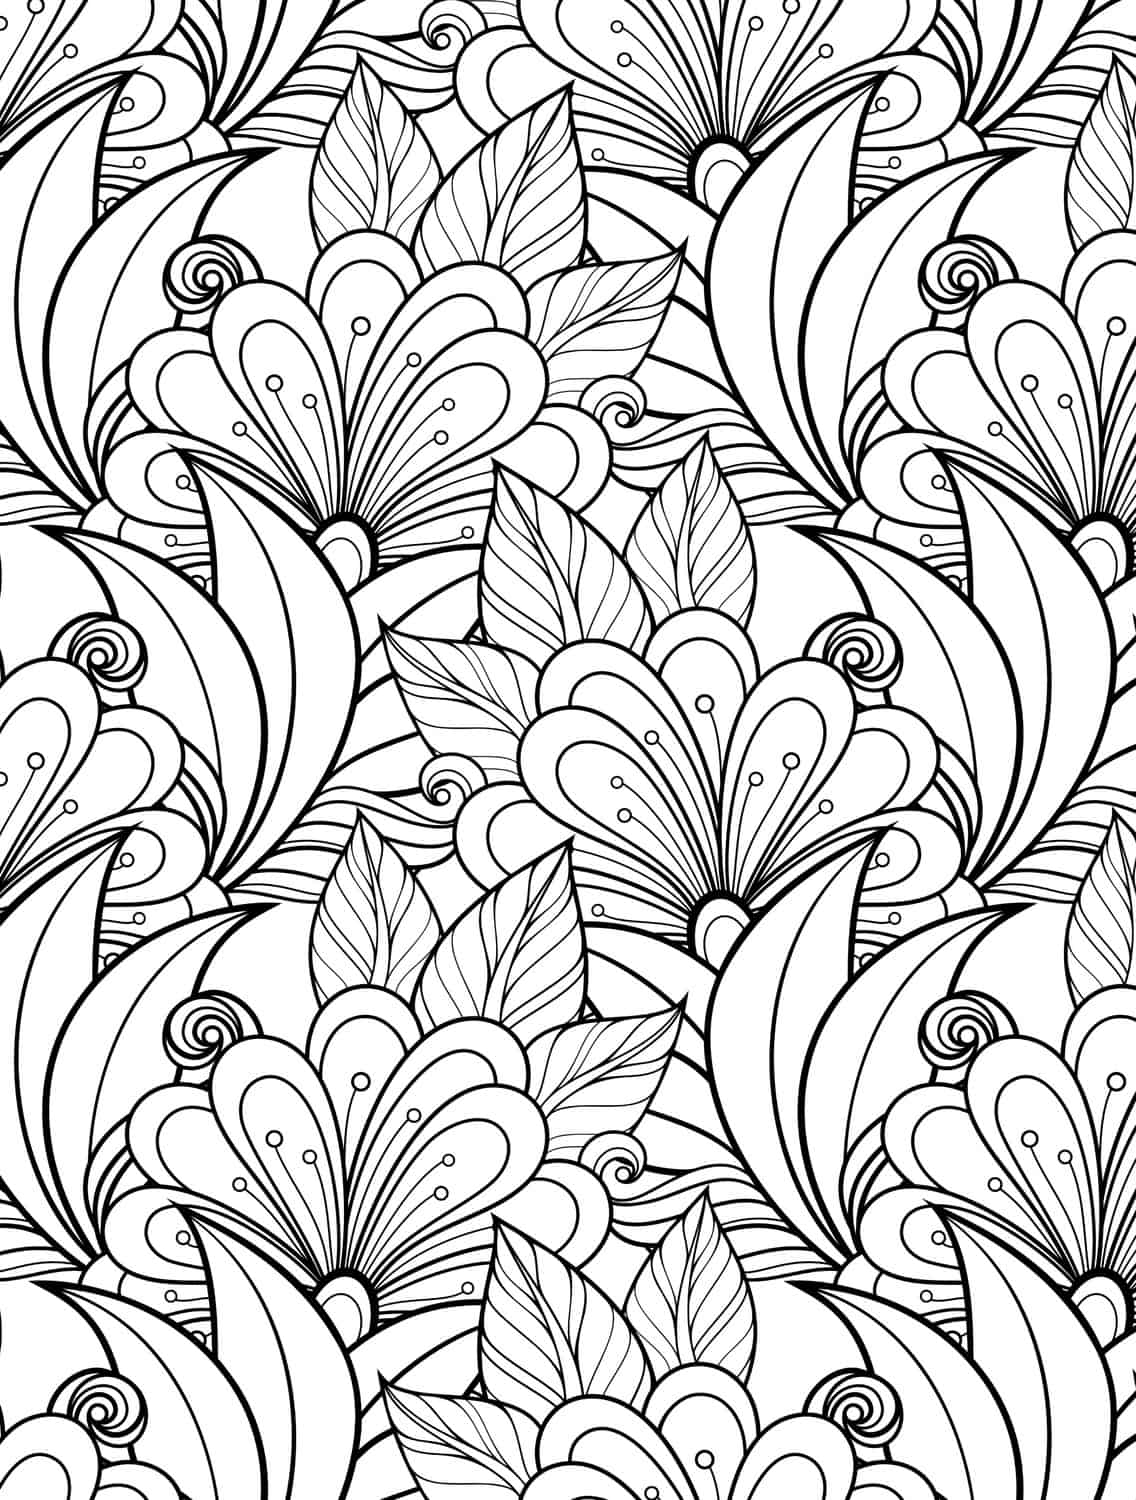 24 More Free Printable Adult Coloring Pages - Page 7 of 25 - Nerdy Mamma